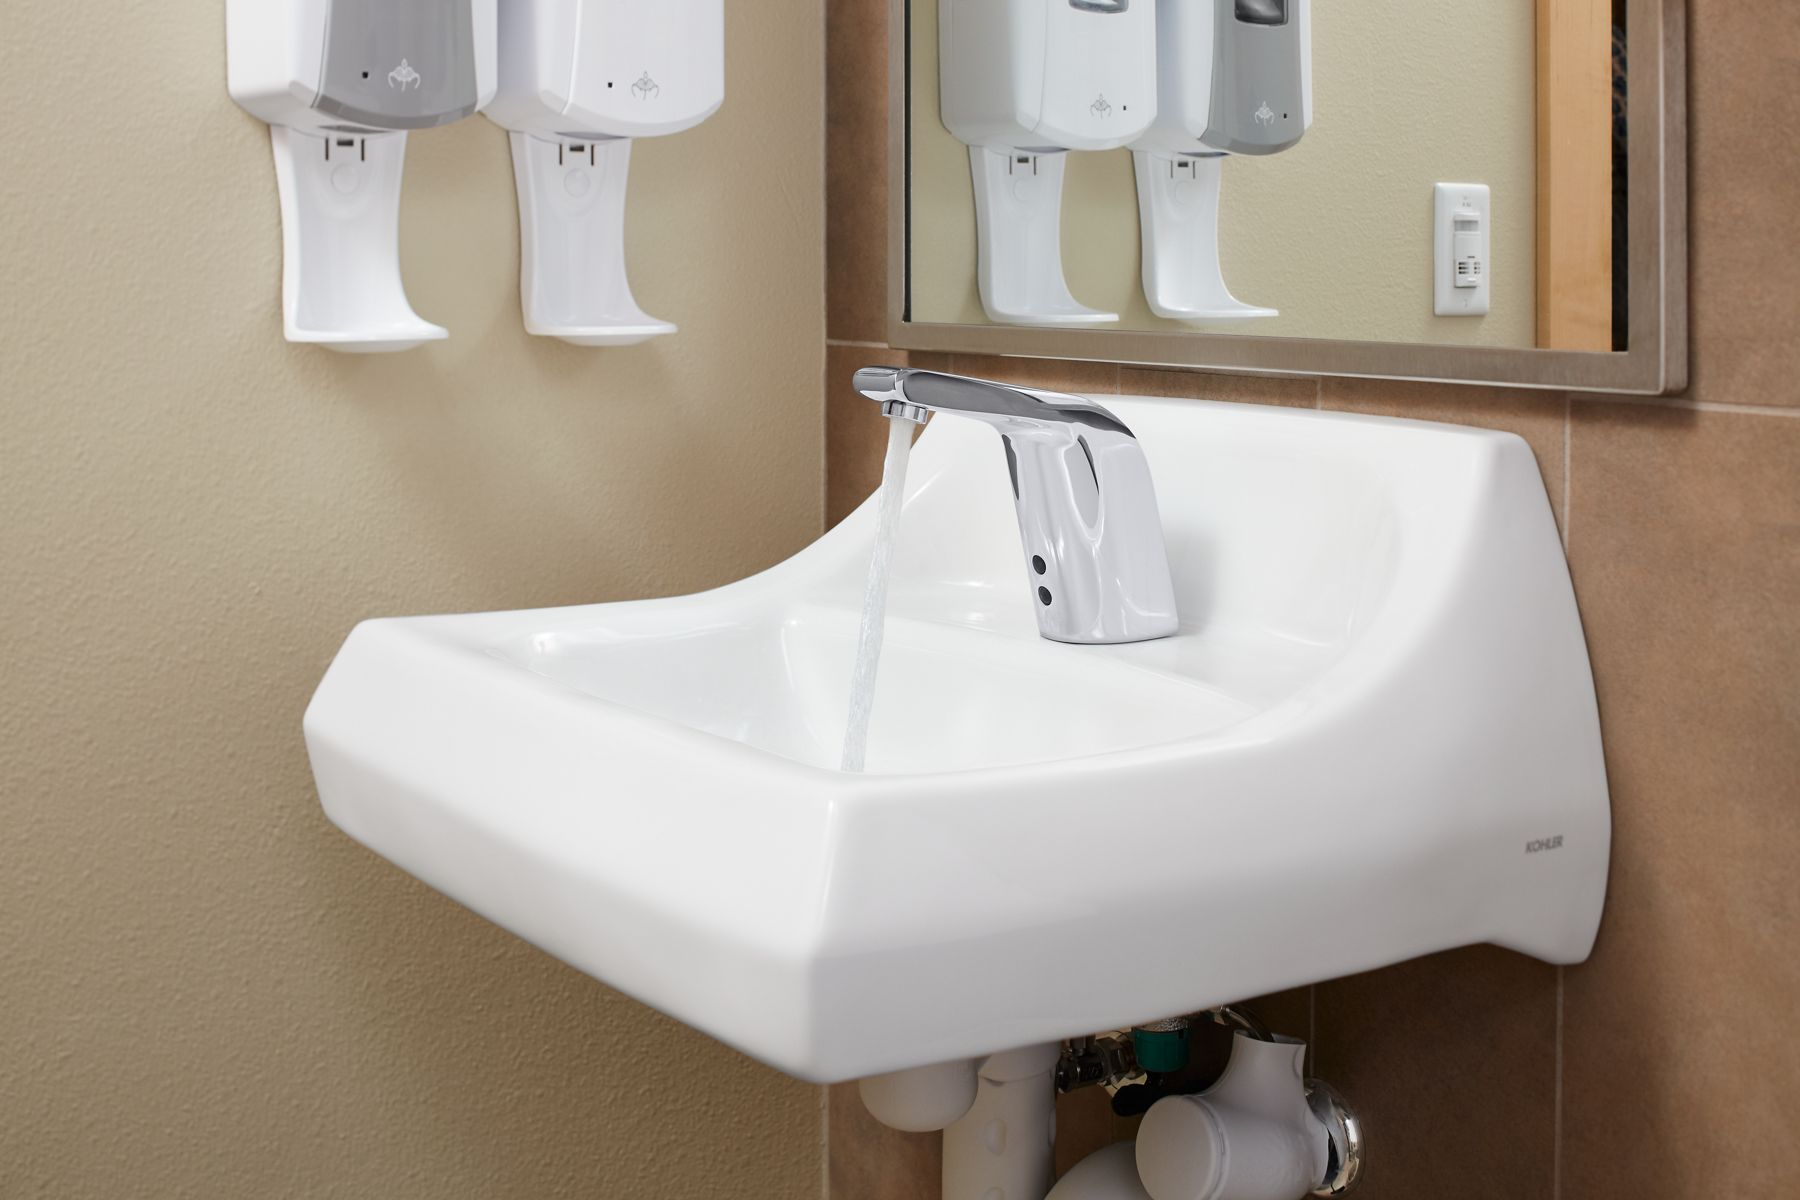 Beau Commercial Lavatories. Made To Withstand The Most Demanding Environments.